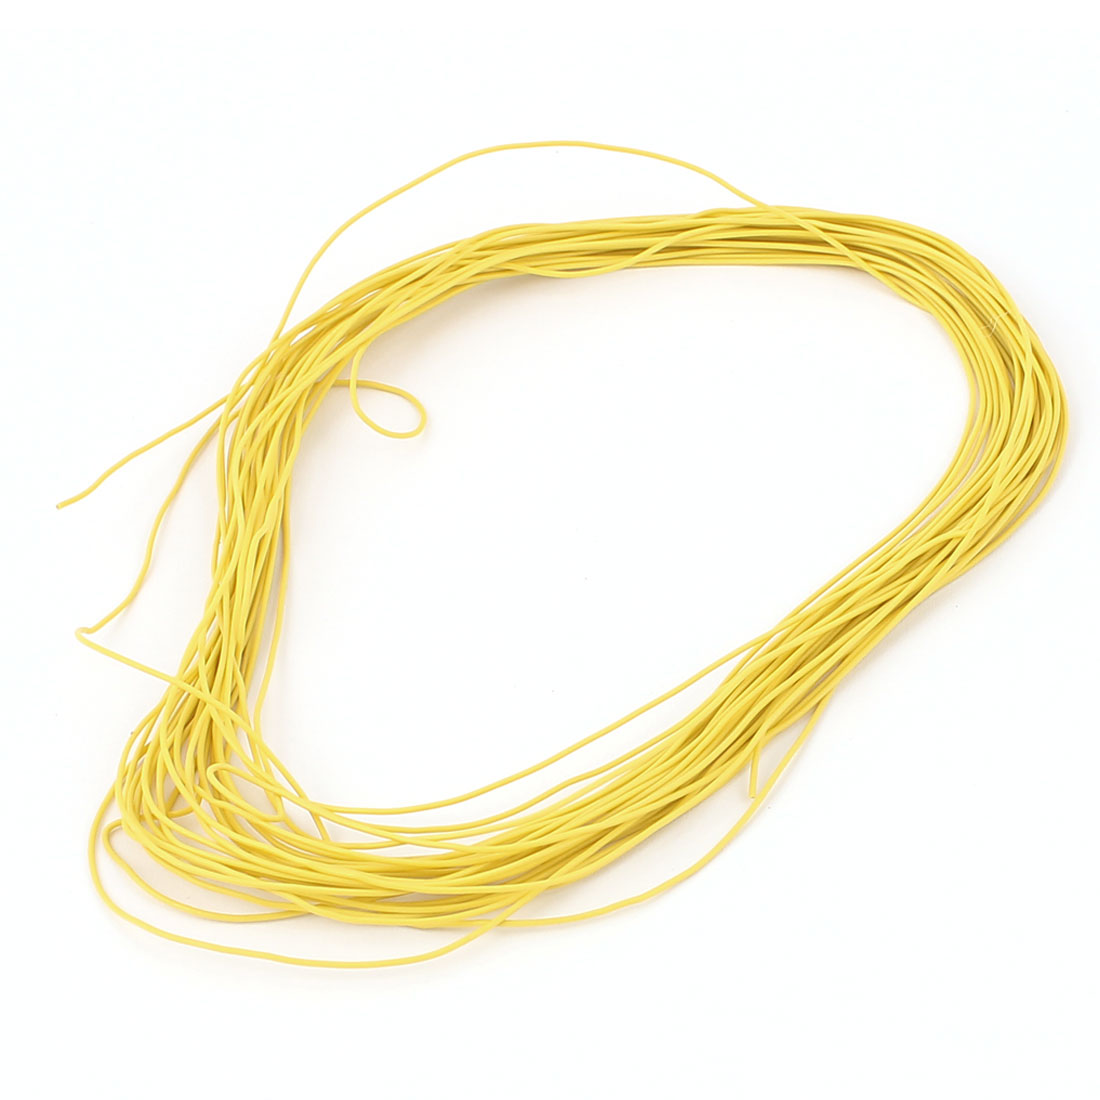 10M 30AWG Electric Copper Core Flexible Silicone Wire Cable Yellow